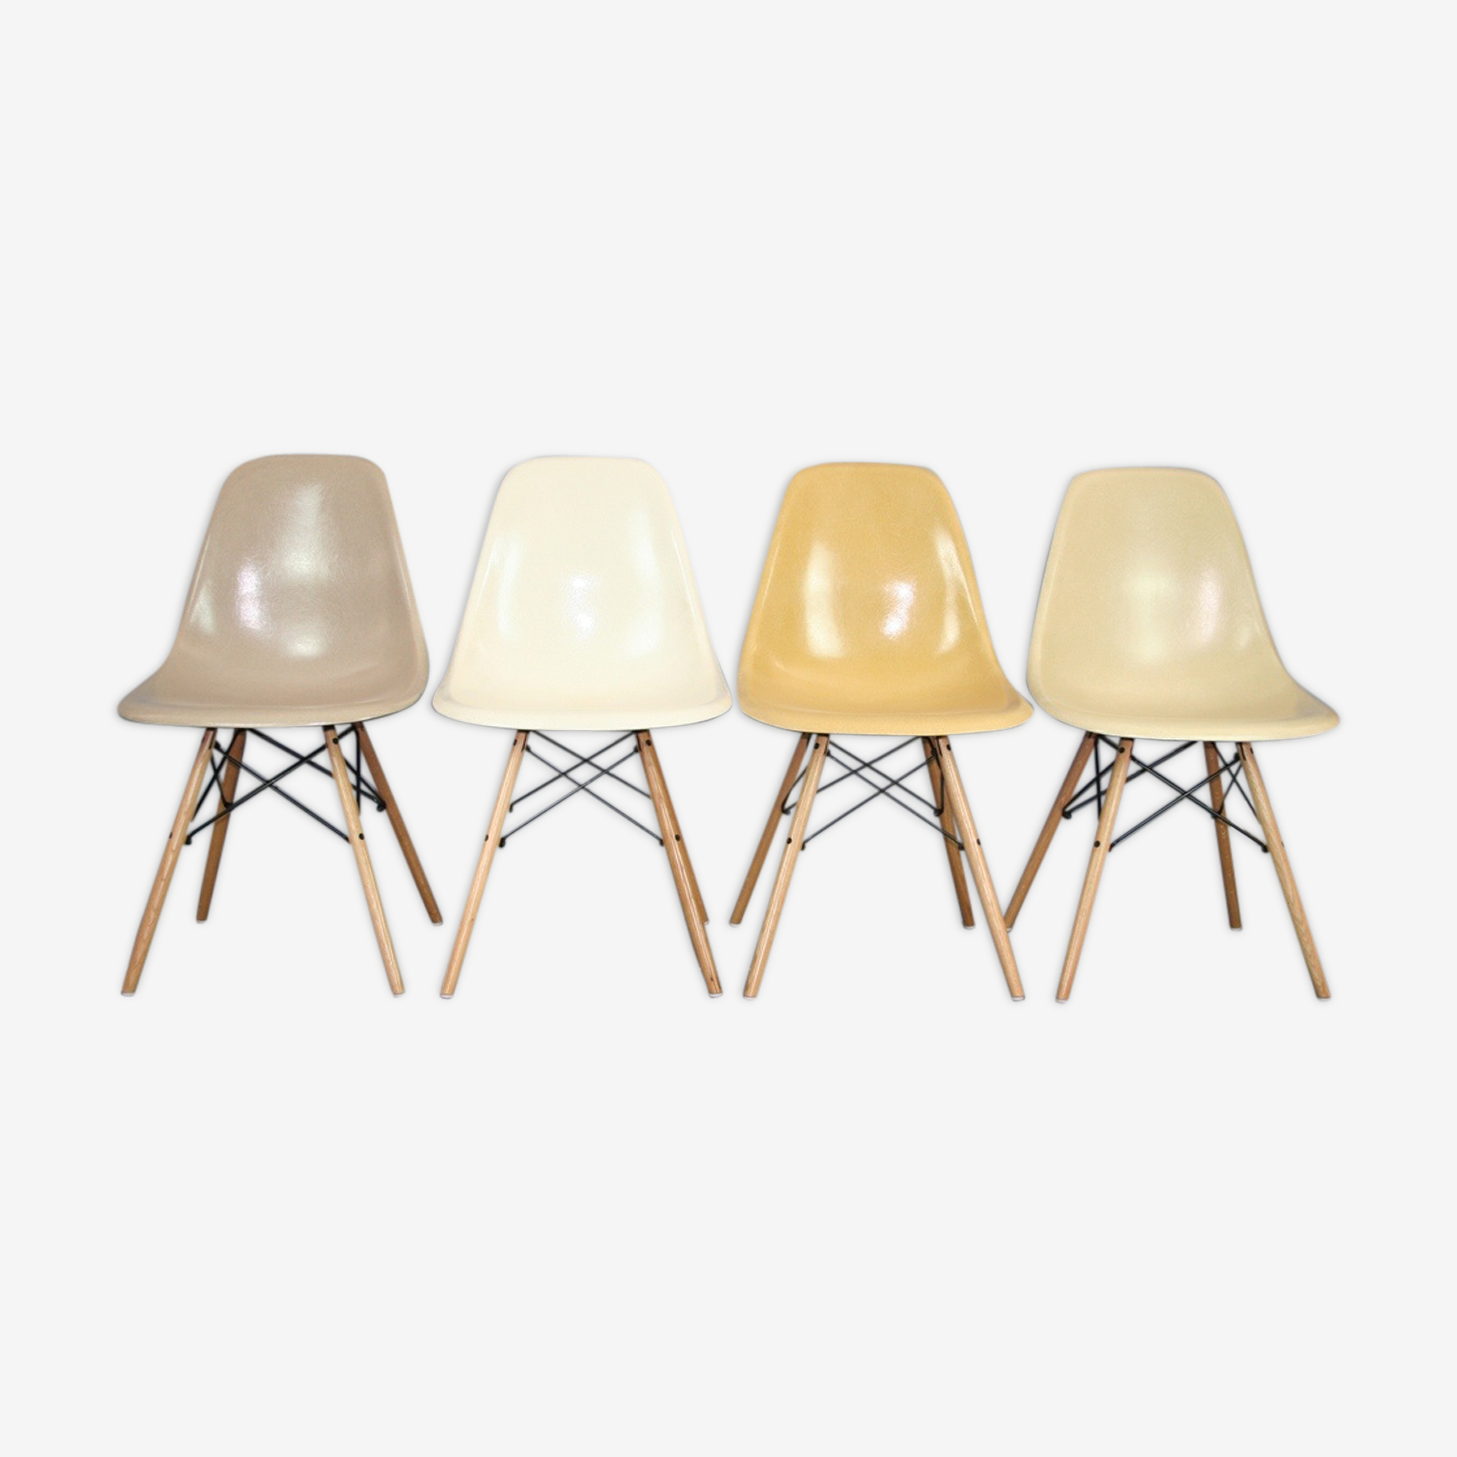 Lot 4 chairs DSW Charles Eames Herman Miller